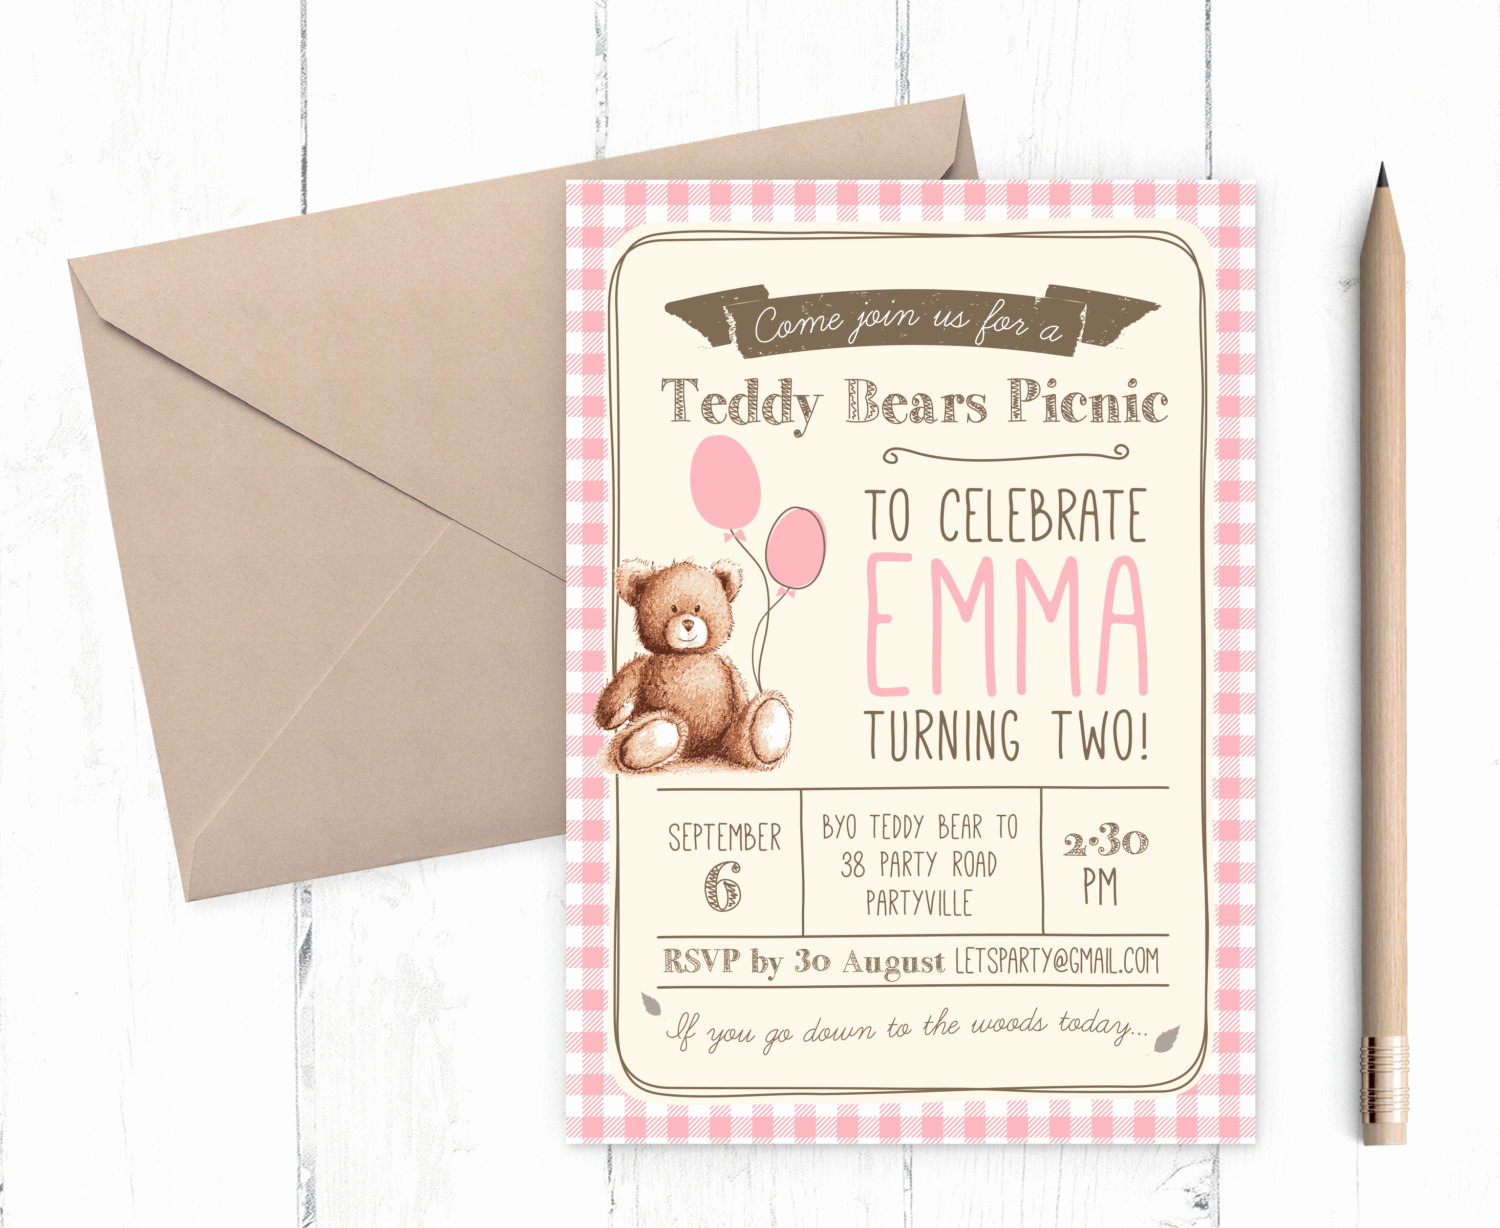 Teddy Bears Picnic Invitation Inspirational Gingham Teddy Bears Picnic Birthday Invitation Uni